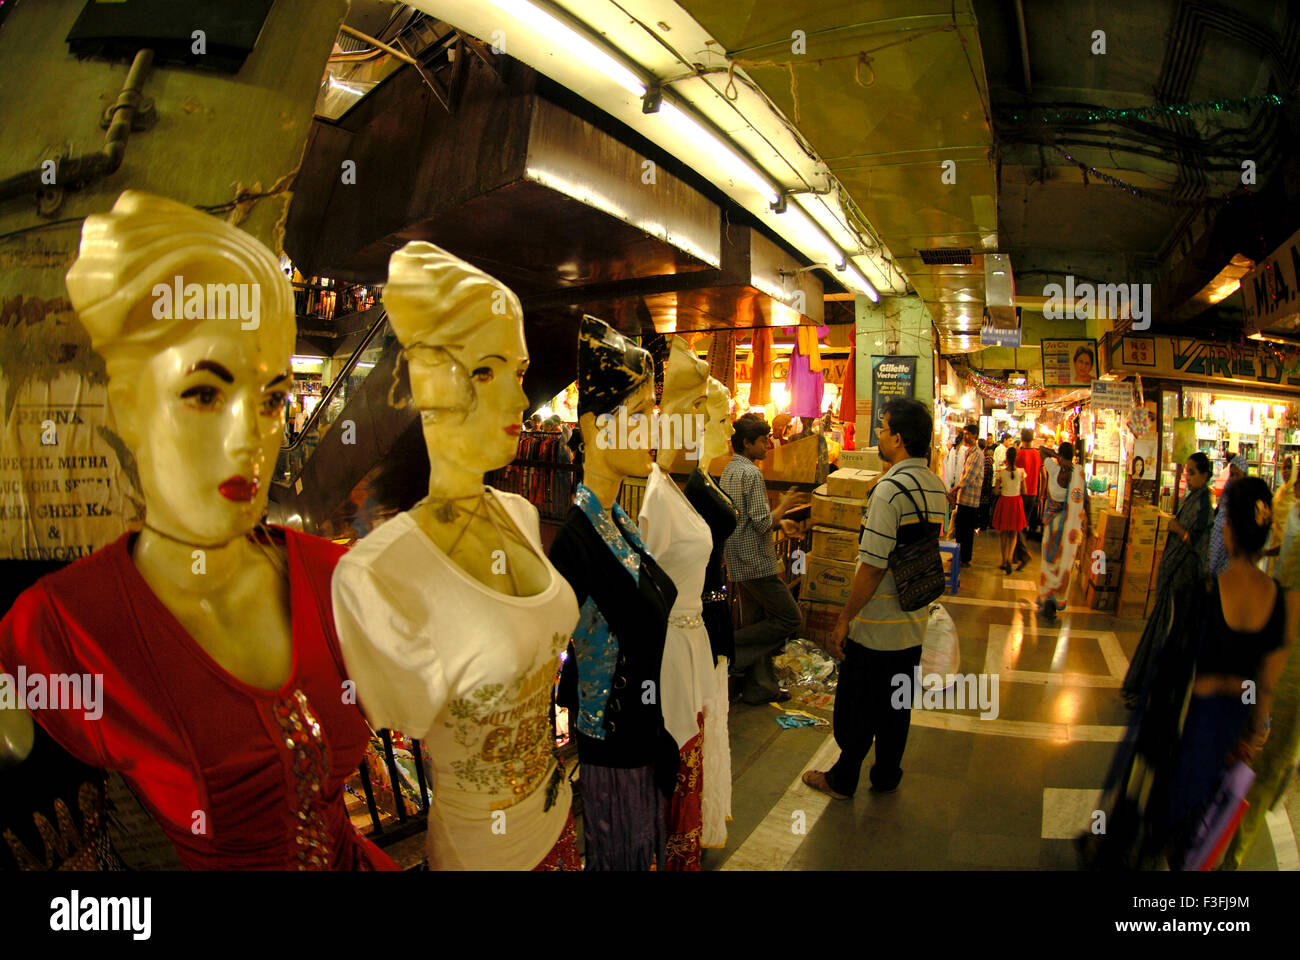 Readymade garments shop ; India - Stock Image